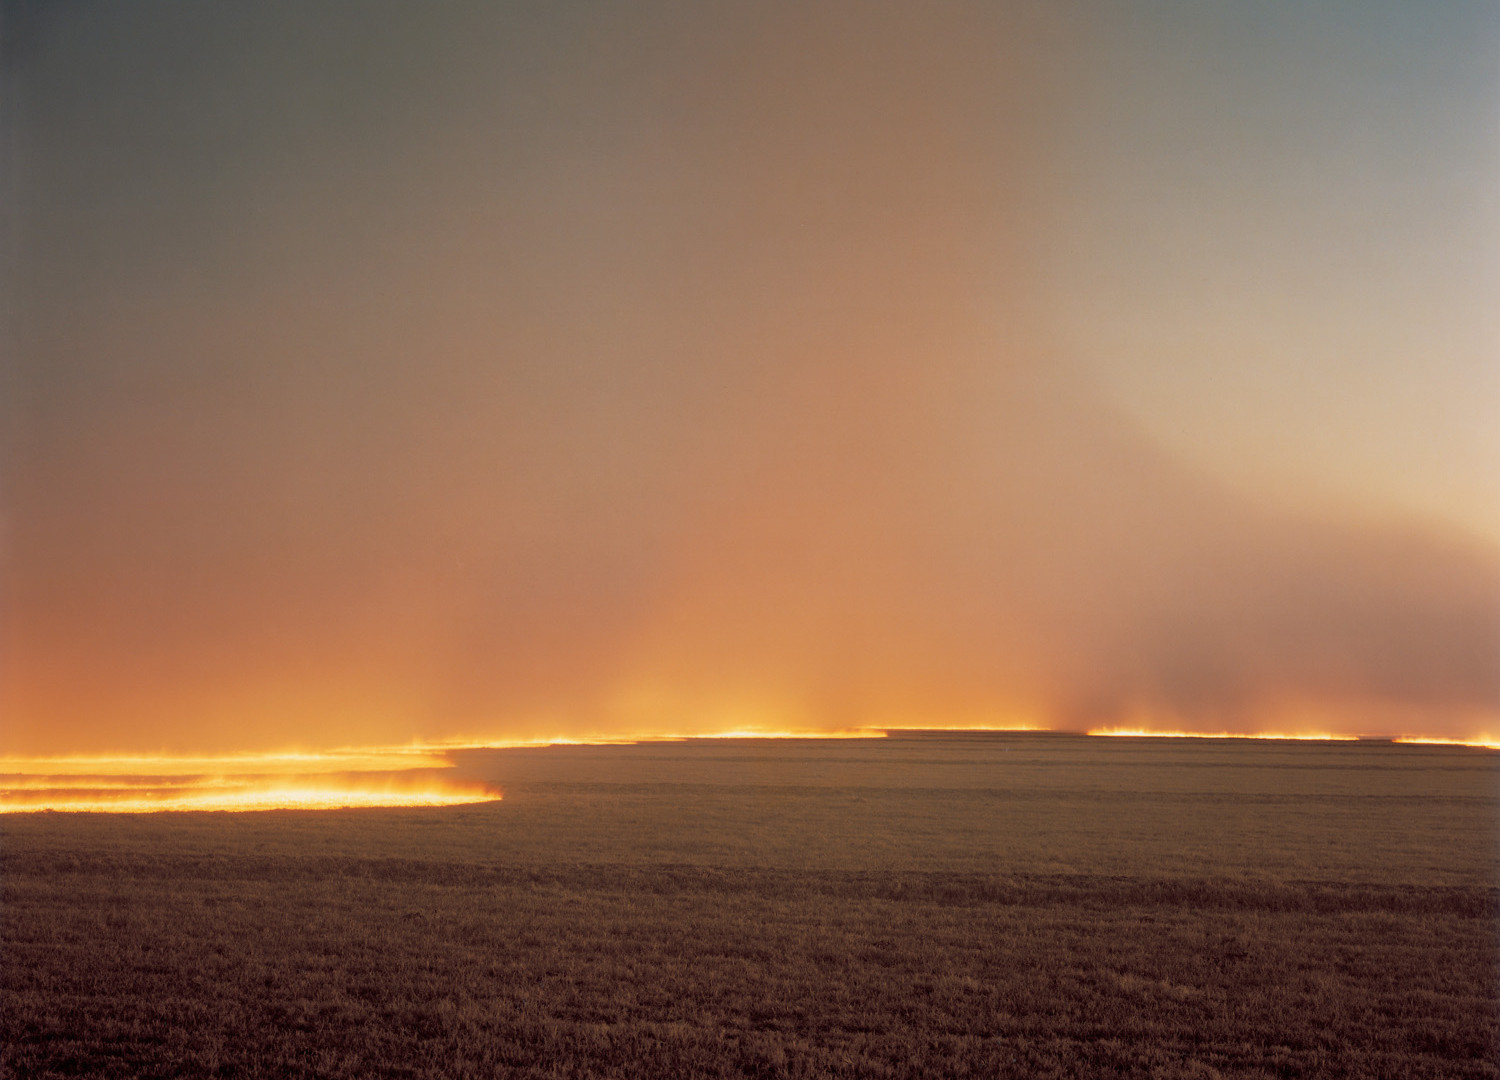 Richard Misrach, Desert Fire #249, 1985